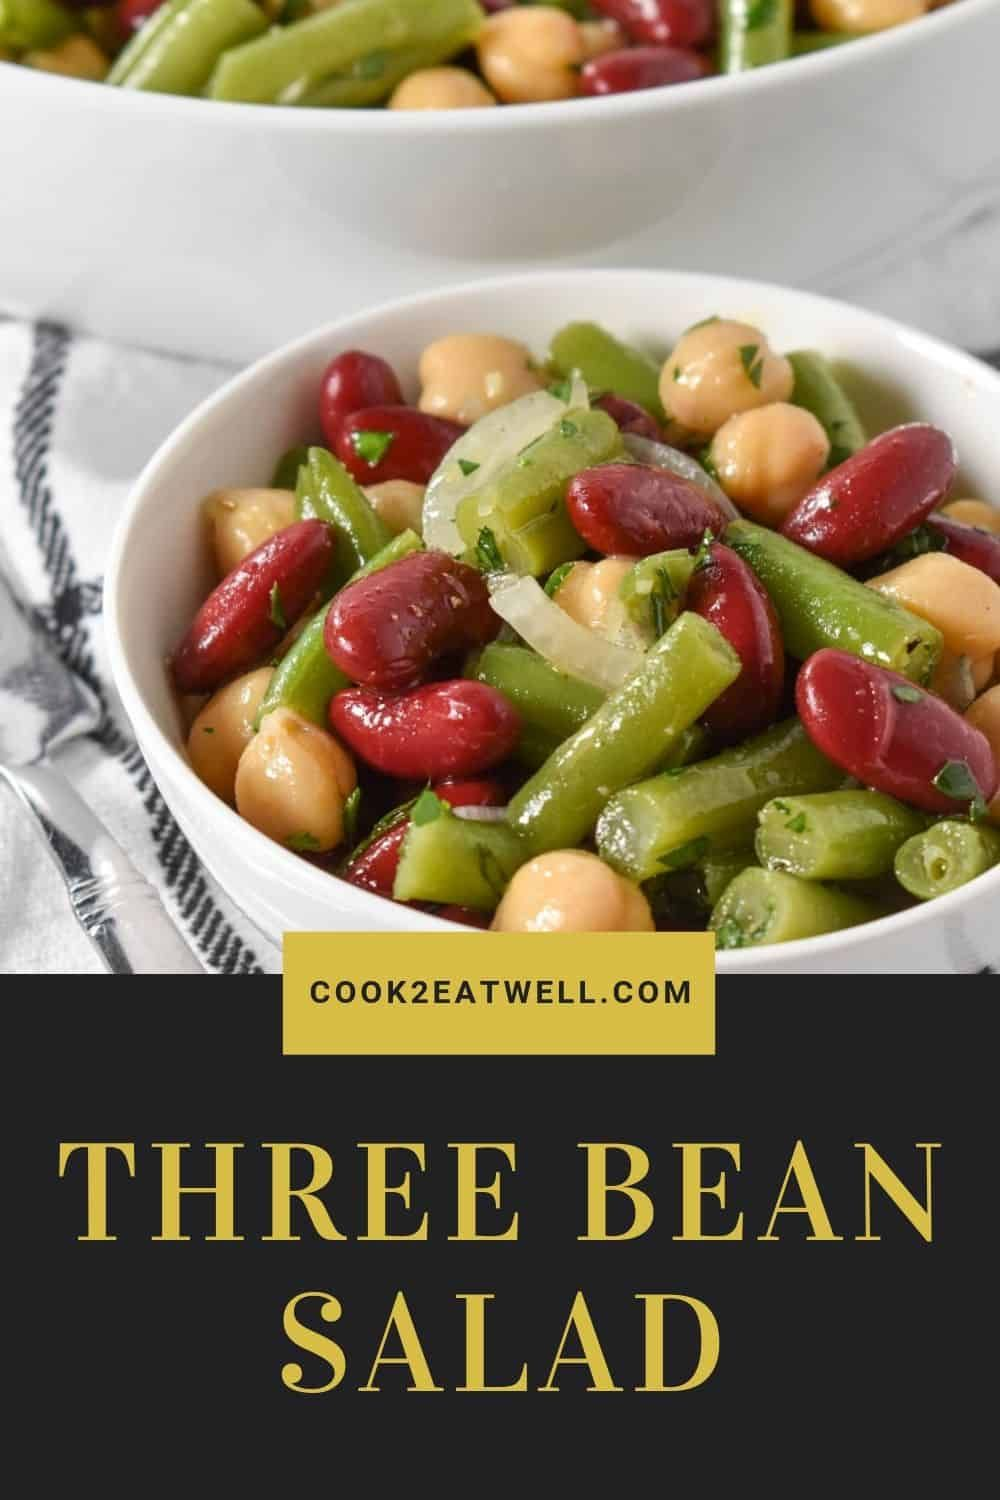 This Three Bean Salad Recipe Is Simple Affordable And Delicious Green Beans Red Kidney Beans And Garba In 2020 Bean Salad Recipes Bean Soup Recipes Three Bean Salad